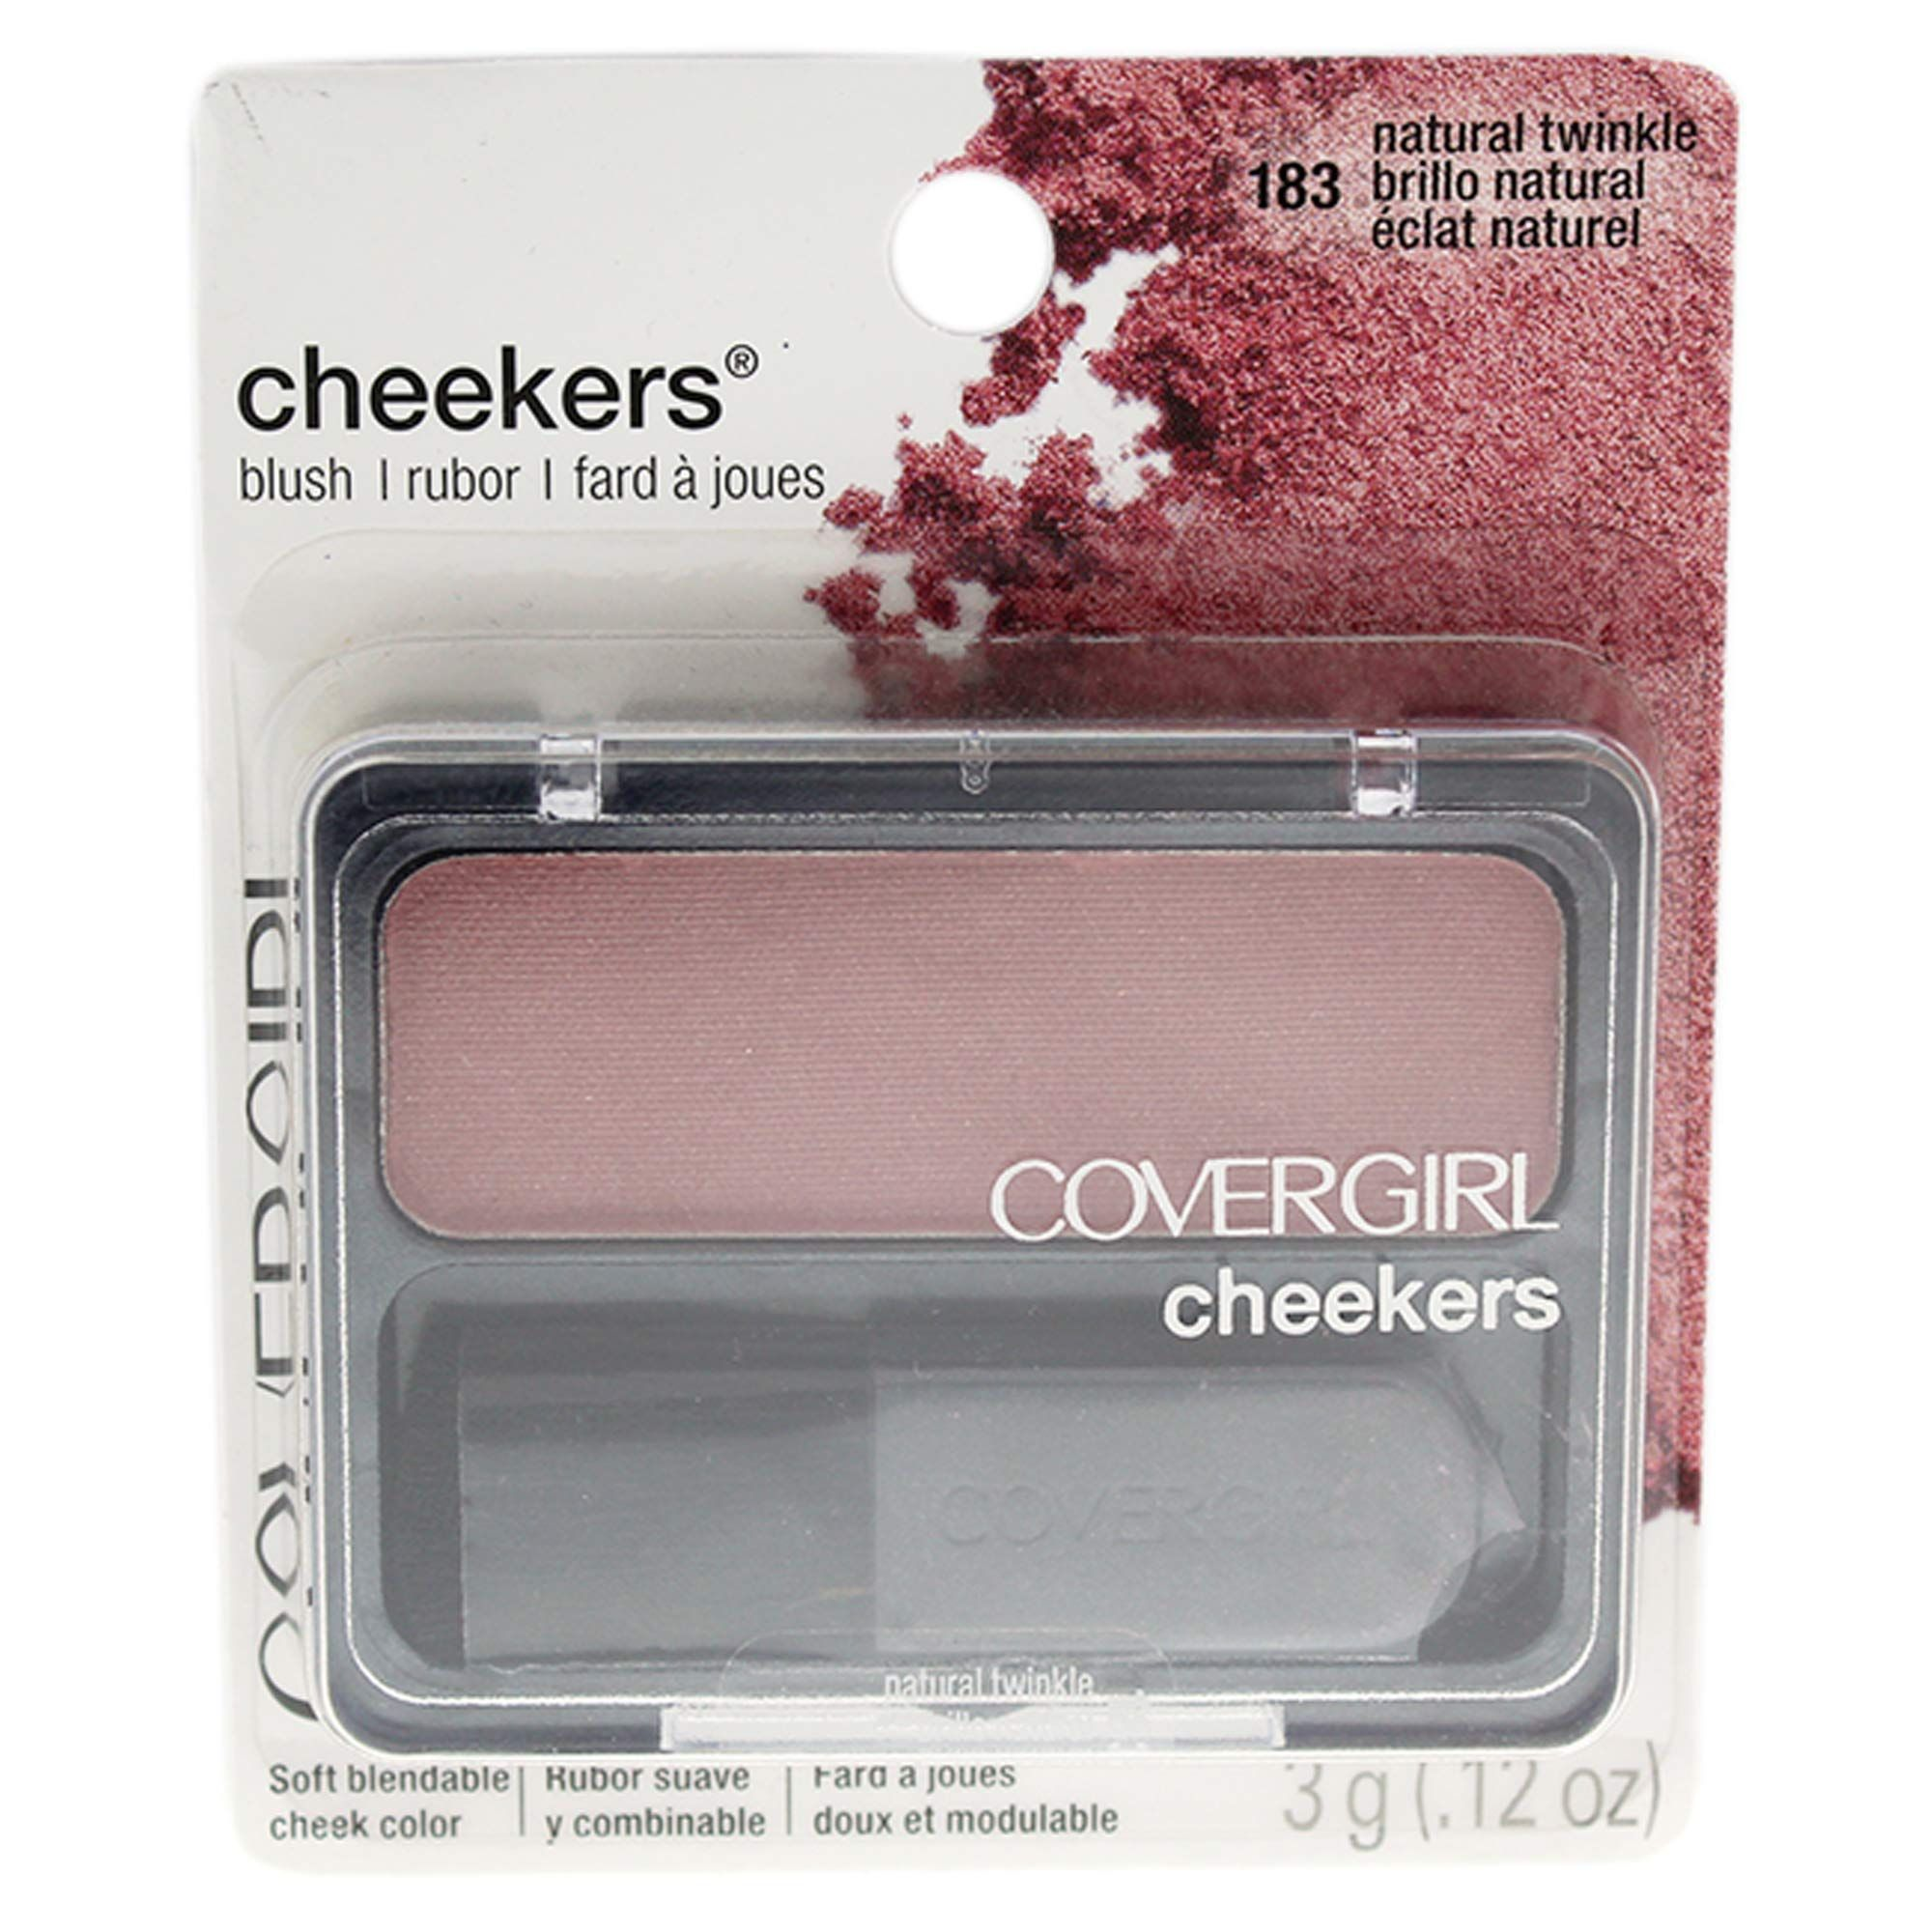 CoverGirl Cheekers Blush Natural Twinkle in 2020